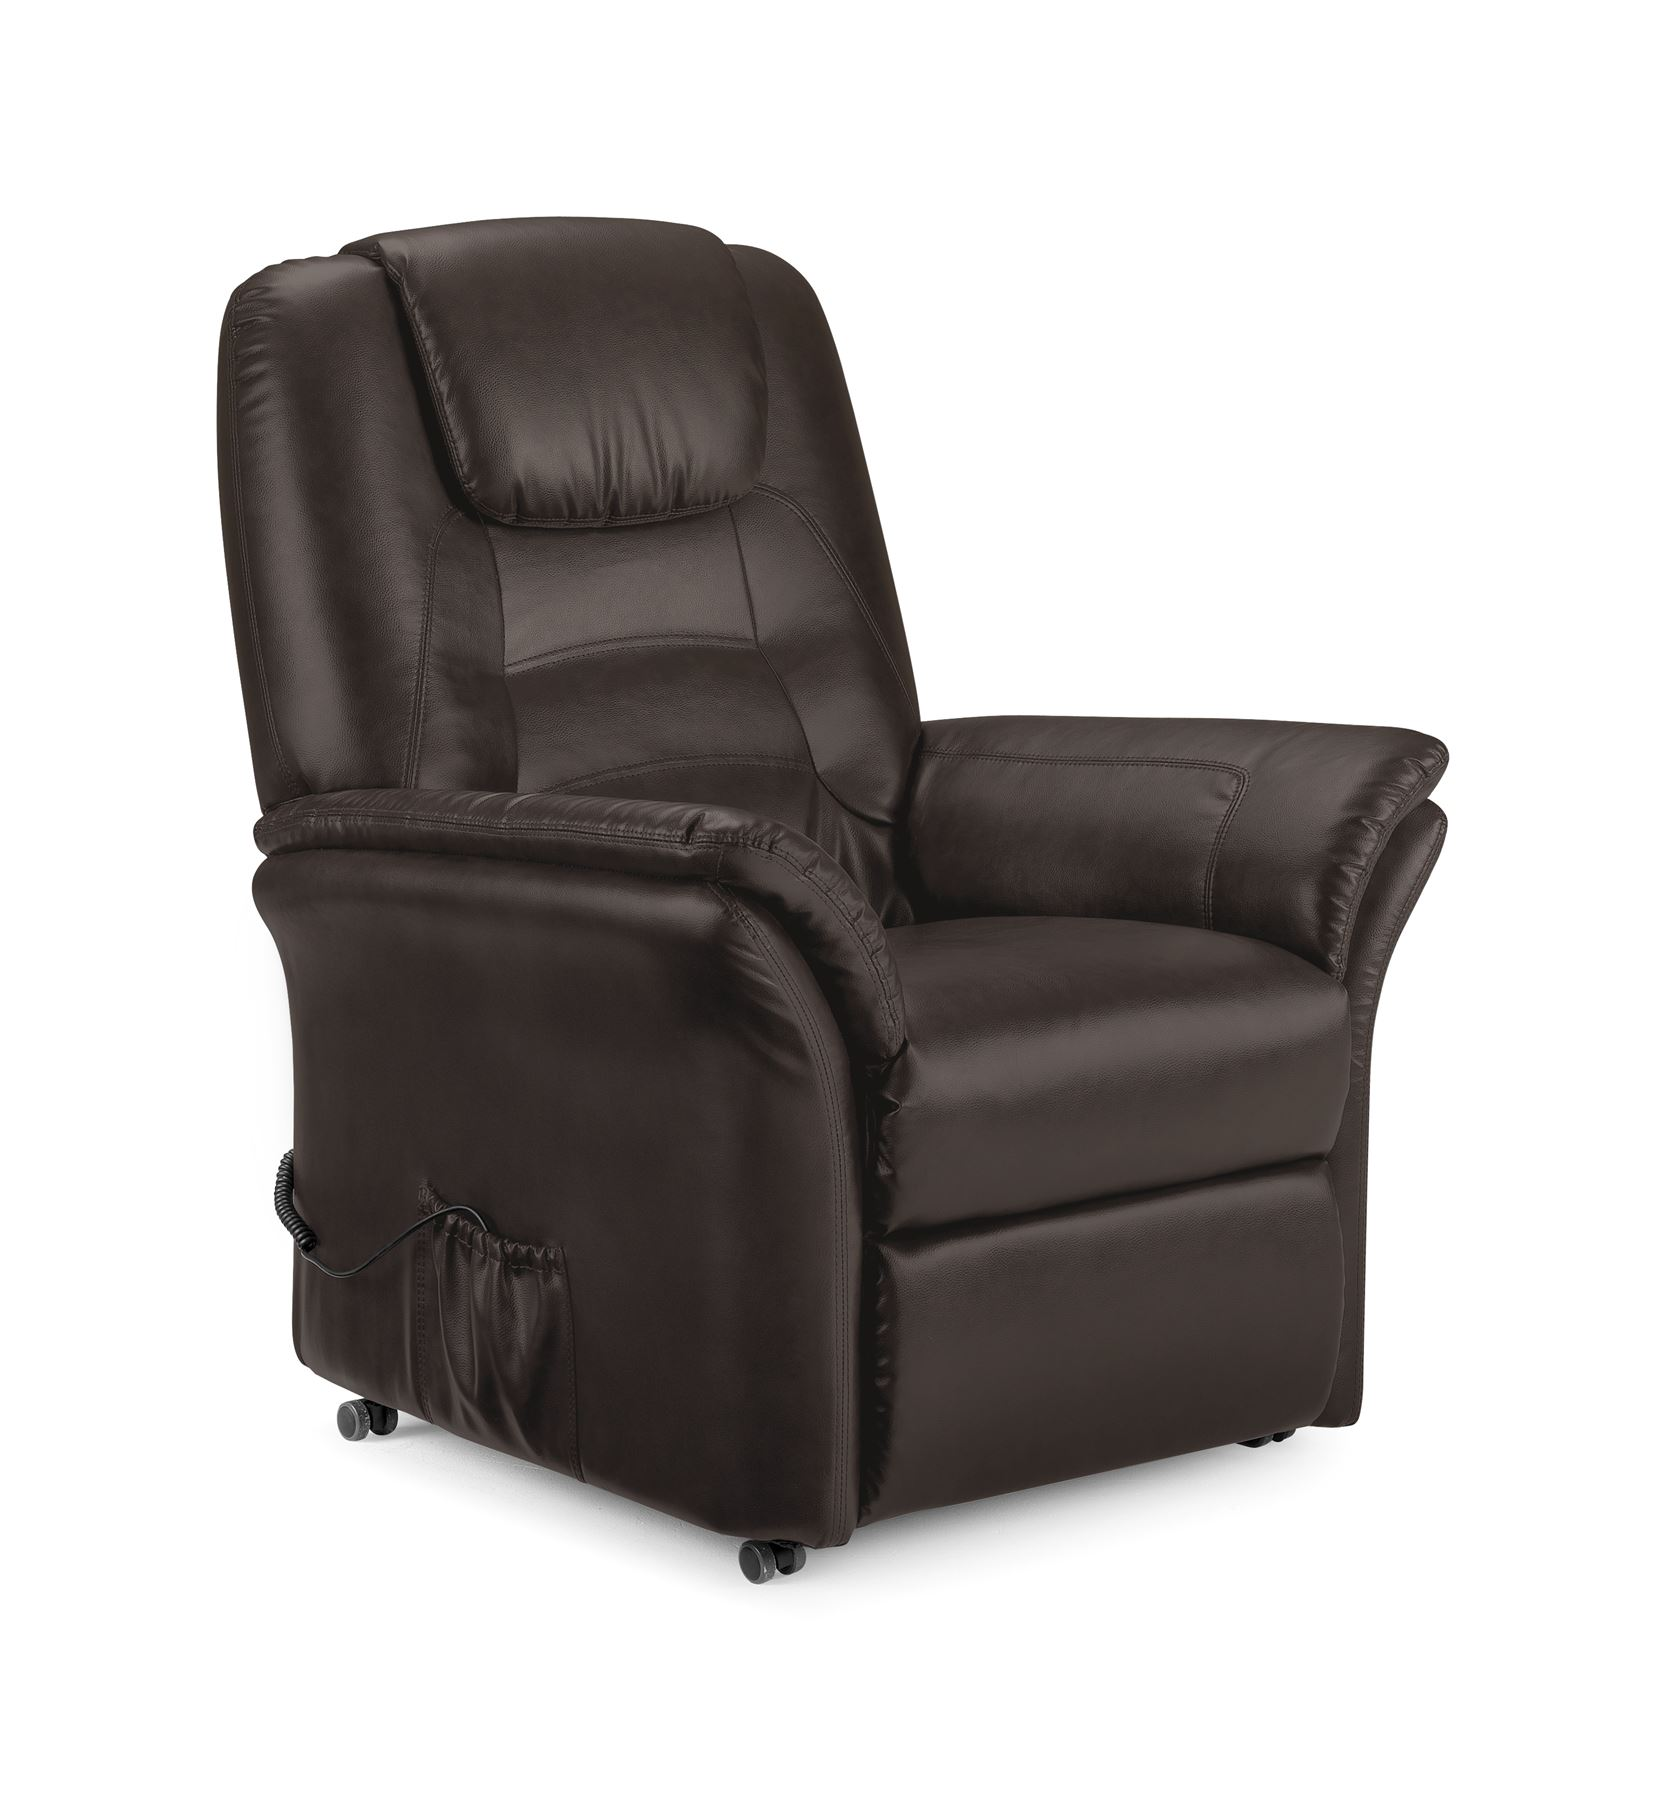 Electric Recliner Leather Chairs Riva Electric Recliner Chair Brown Faux Leather New Ebay